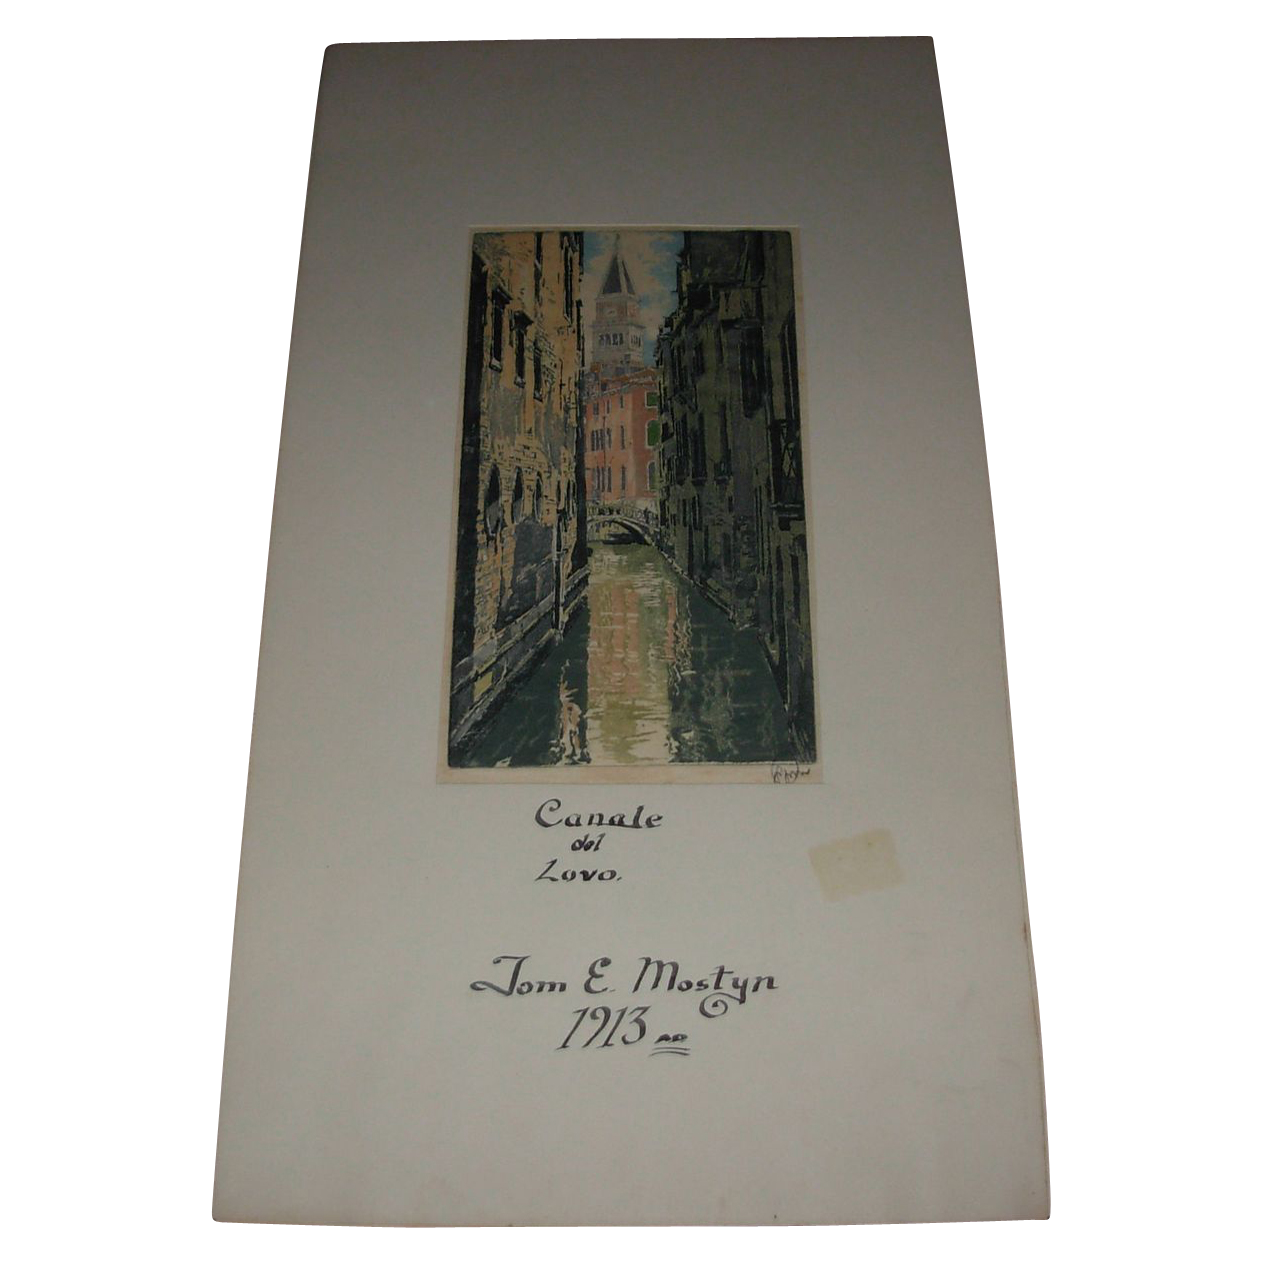 """Vintage Signed Drawing """"Canale del Lovo"""" by John E Mostyn Dated 1913"""